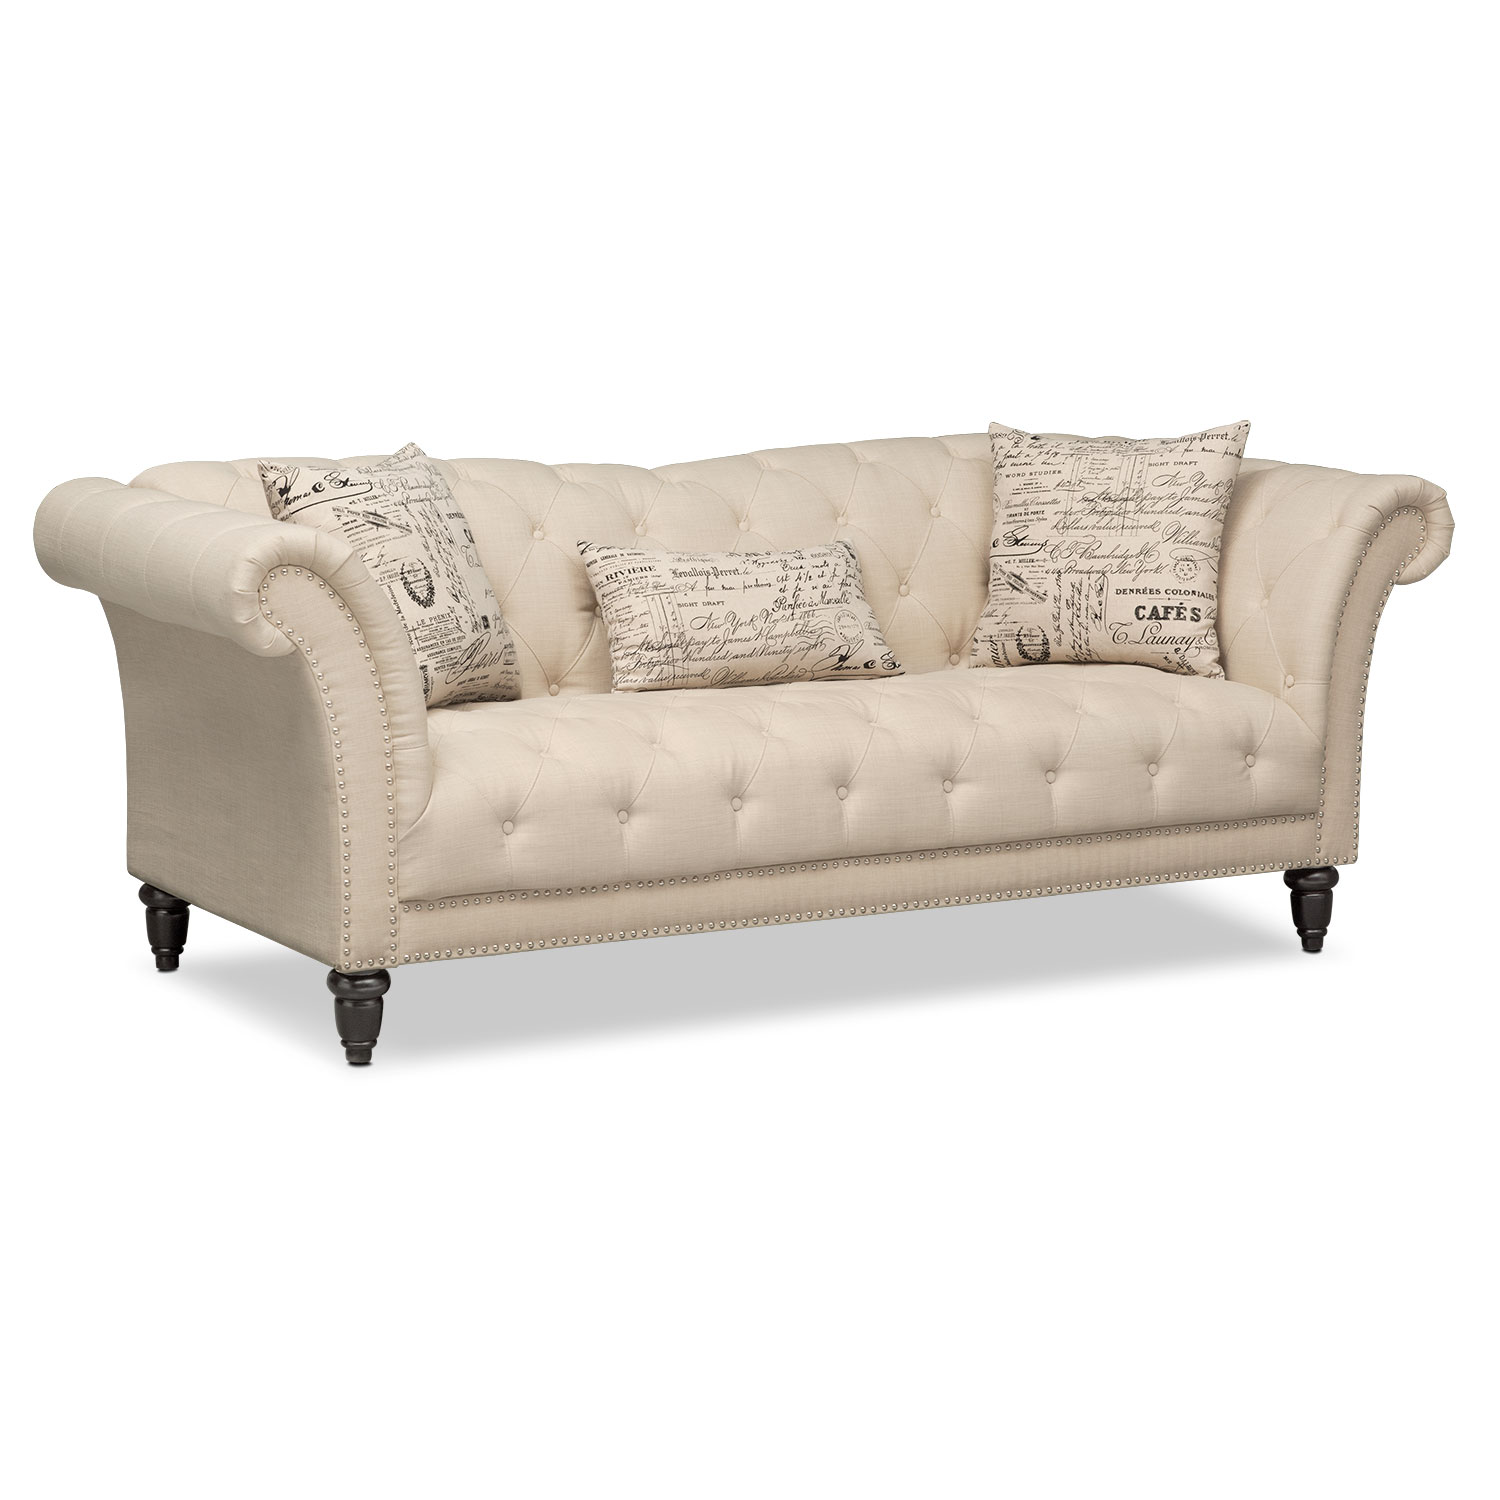 marisol sofa american signature furniture rh americansignaturefurniture com american signature sofa collections american signature sofa collections